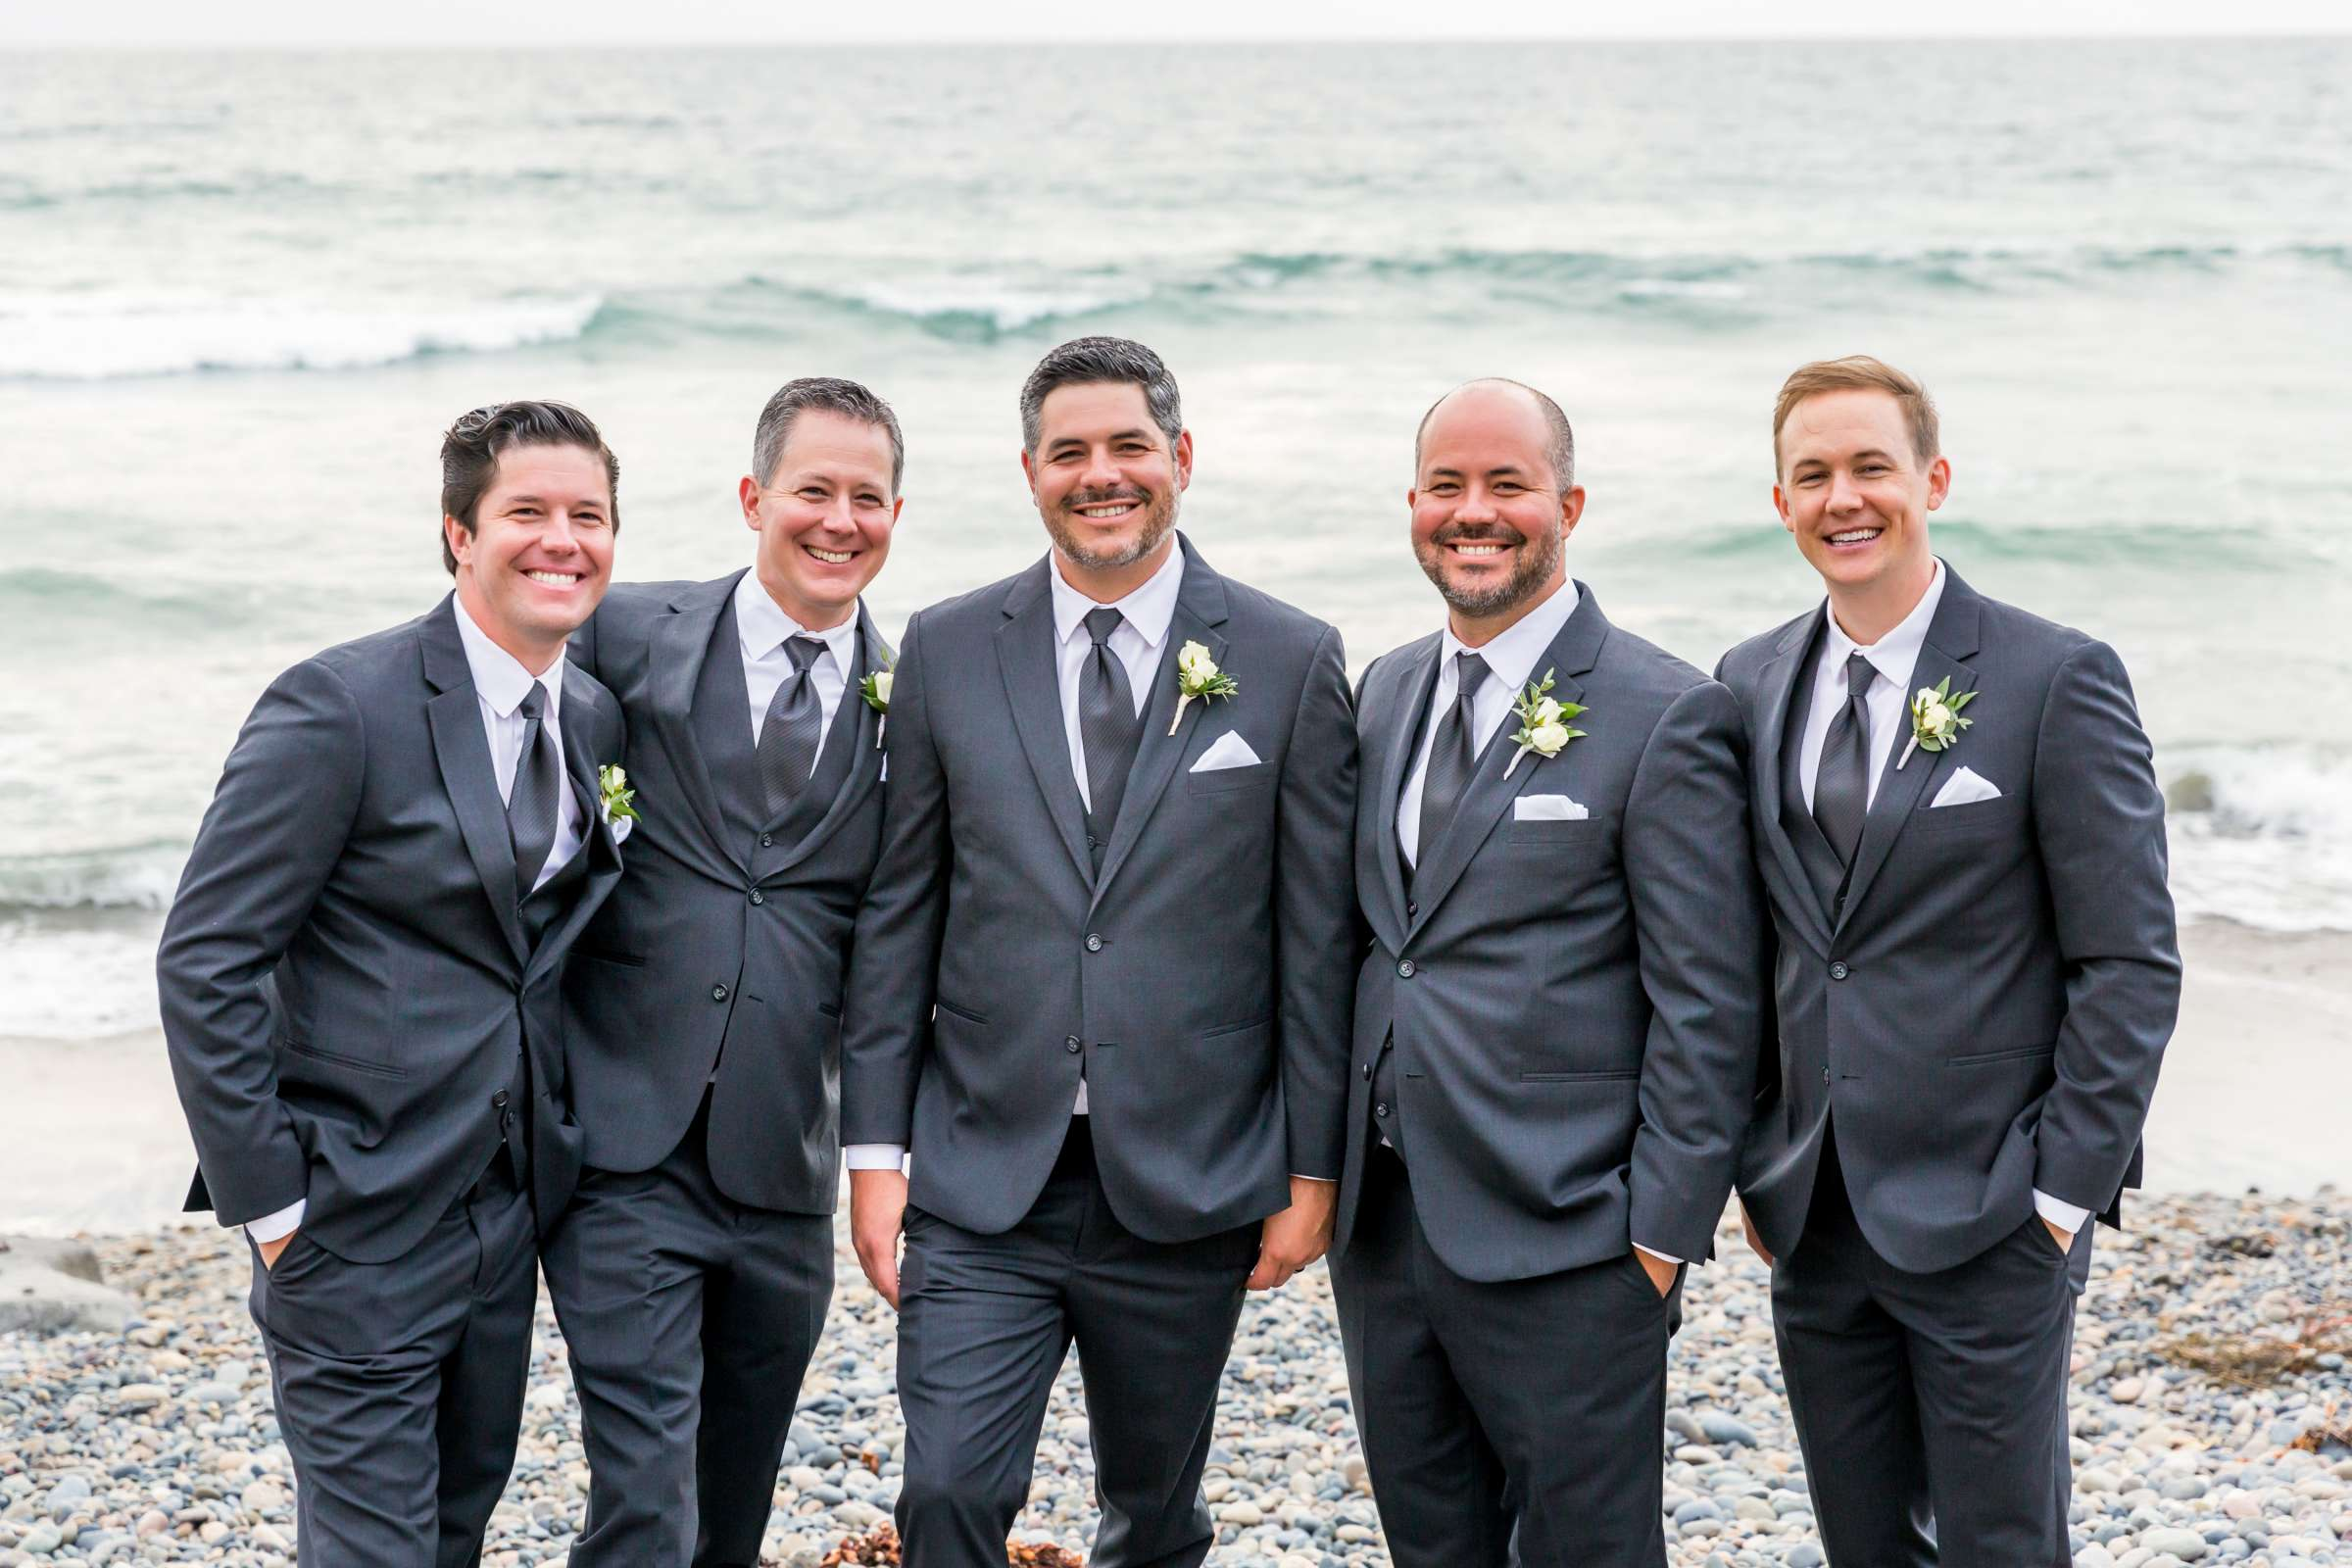 Cape Rey Carlsbad, A Hilton Resort Wedding, Michelle and Justin Wedding Photo #17 by True Photography